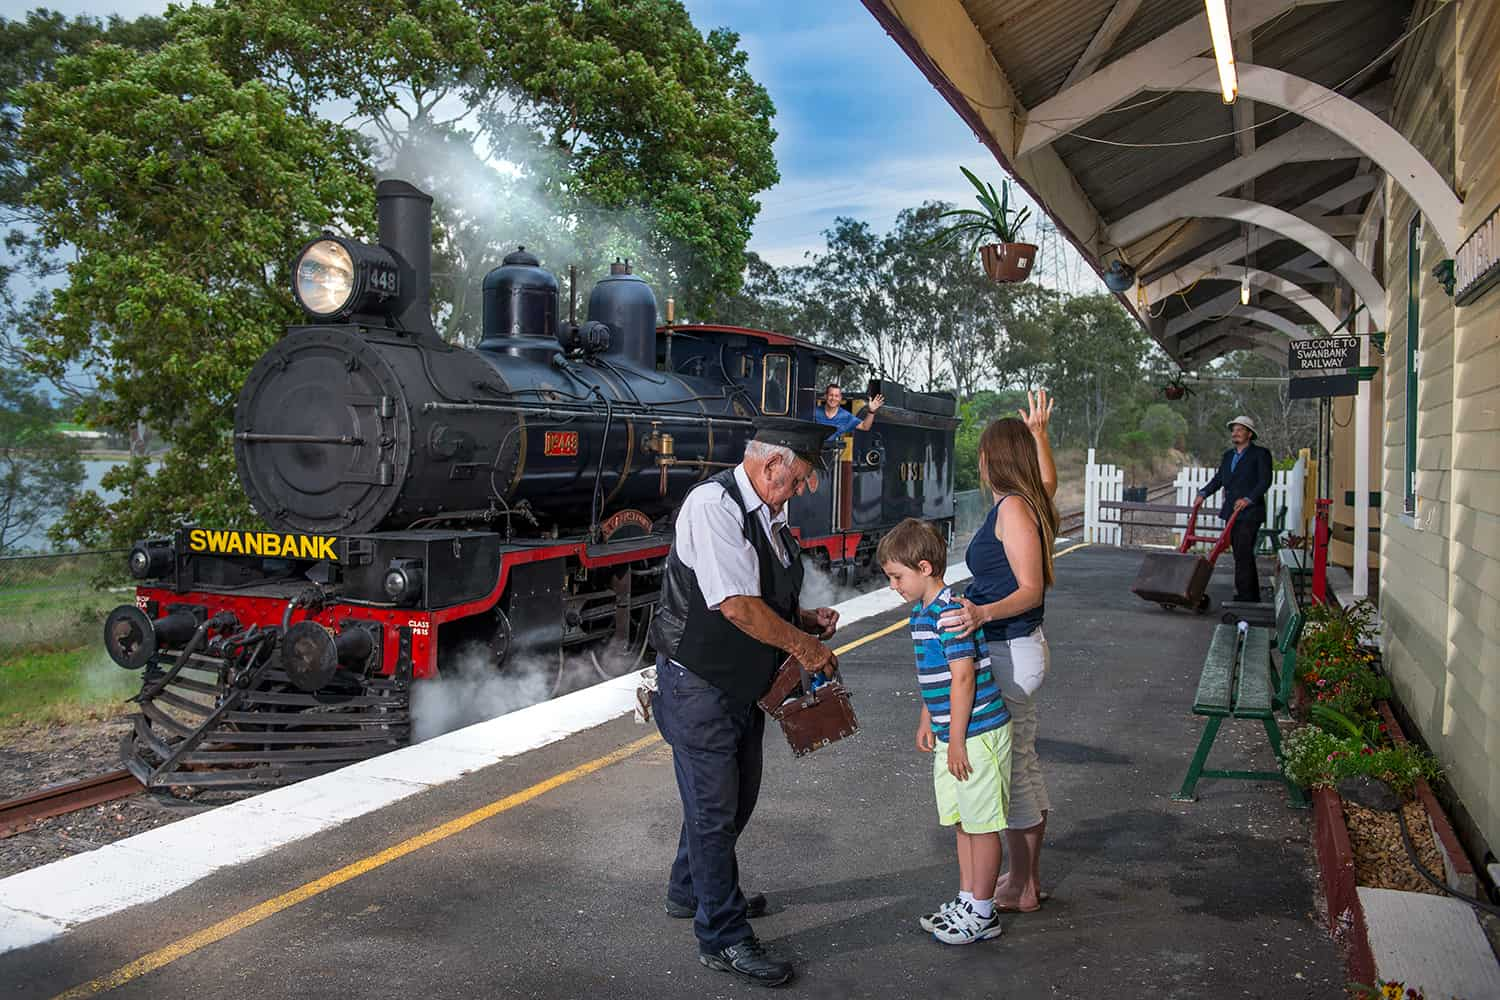 Queensland Pioneer Steam Railway | Ipswich